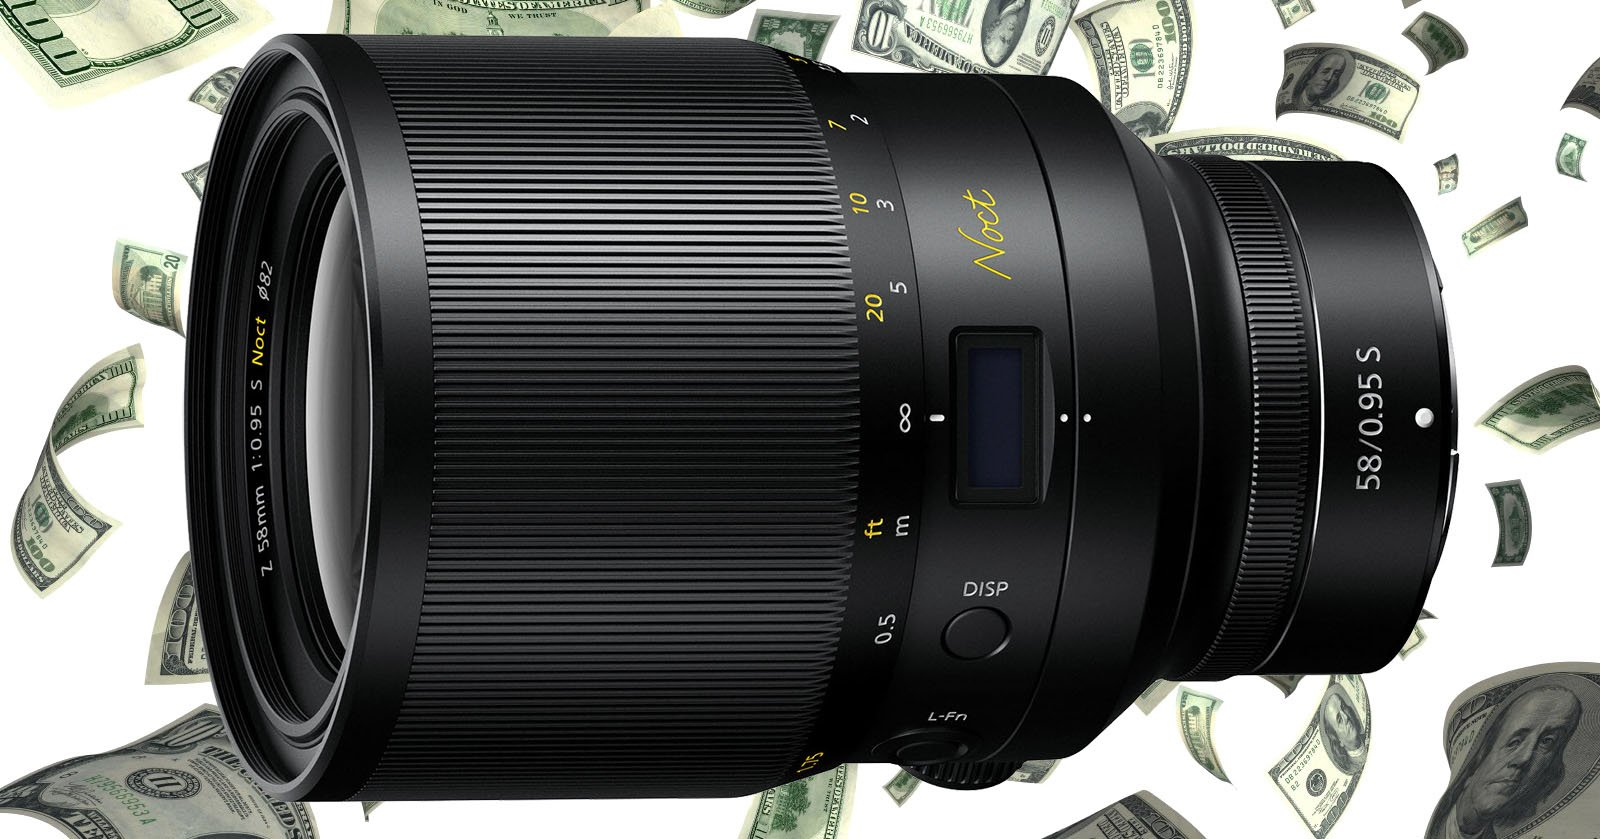 Nikon's 58mm f/0.95 Noct Lens is Going to Cost $8,000: Report